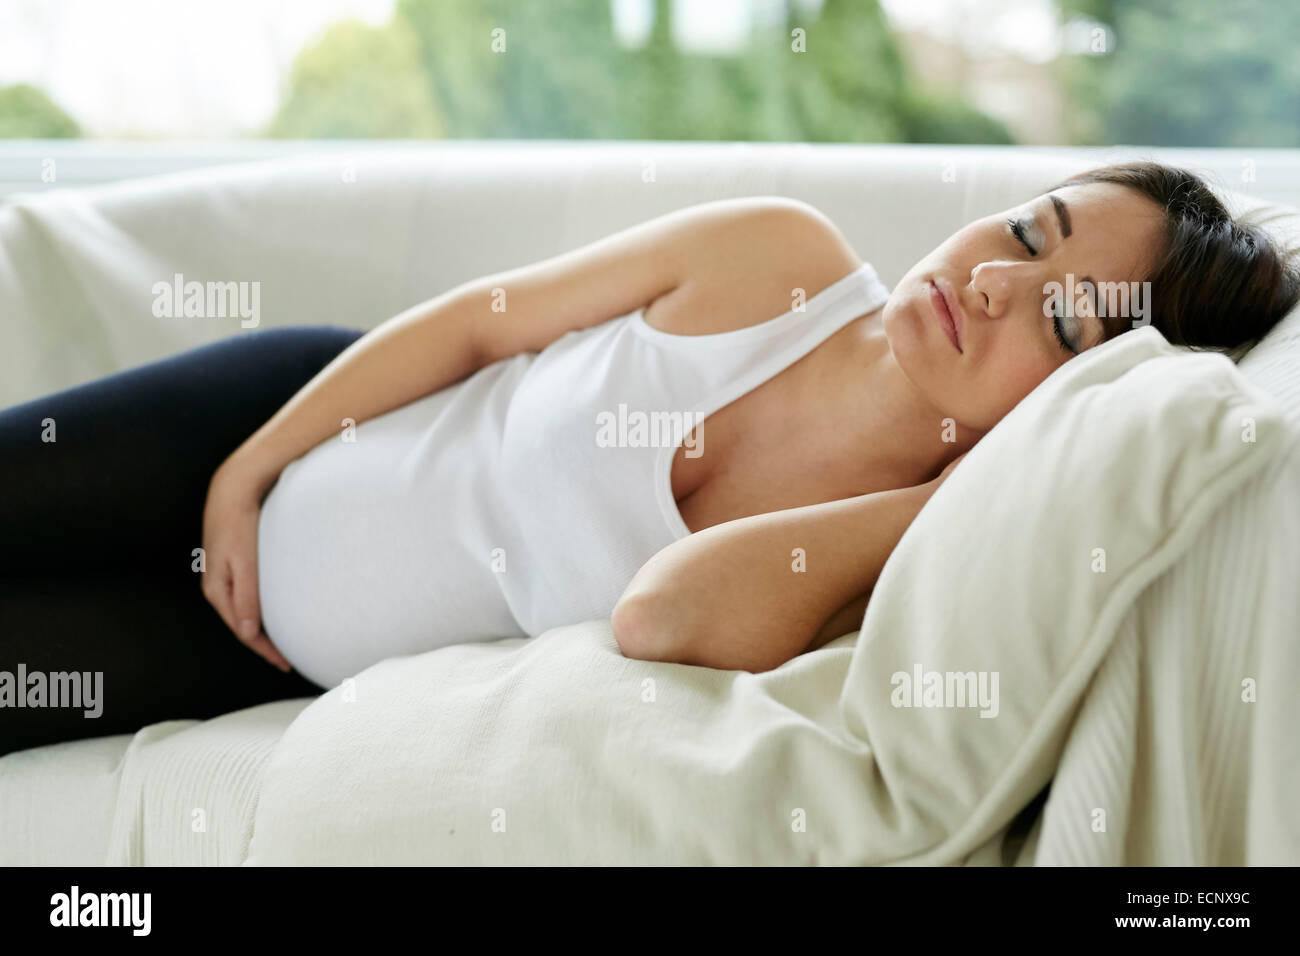 Pregnant woman sleeping - Stock Image